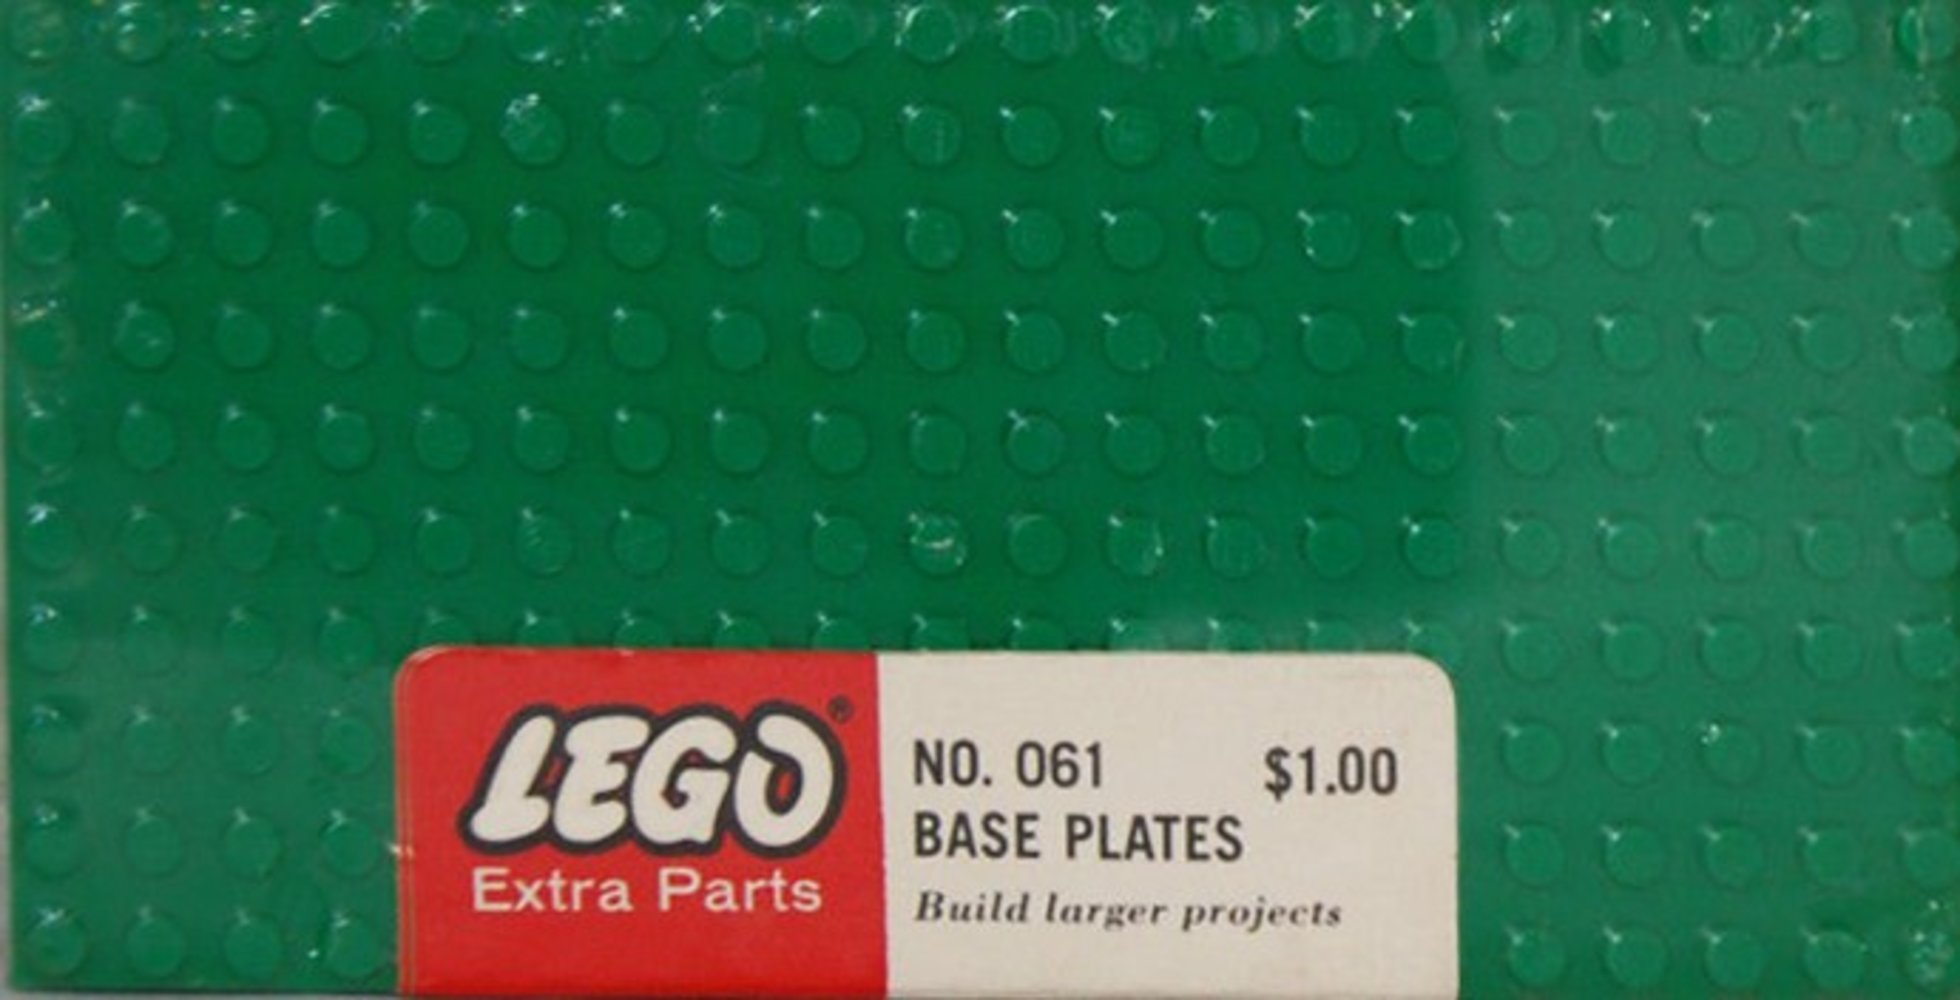 Five Large Base Plates - Green